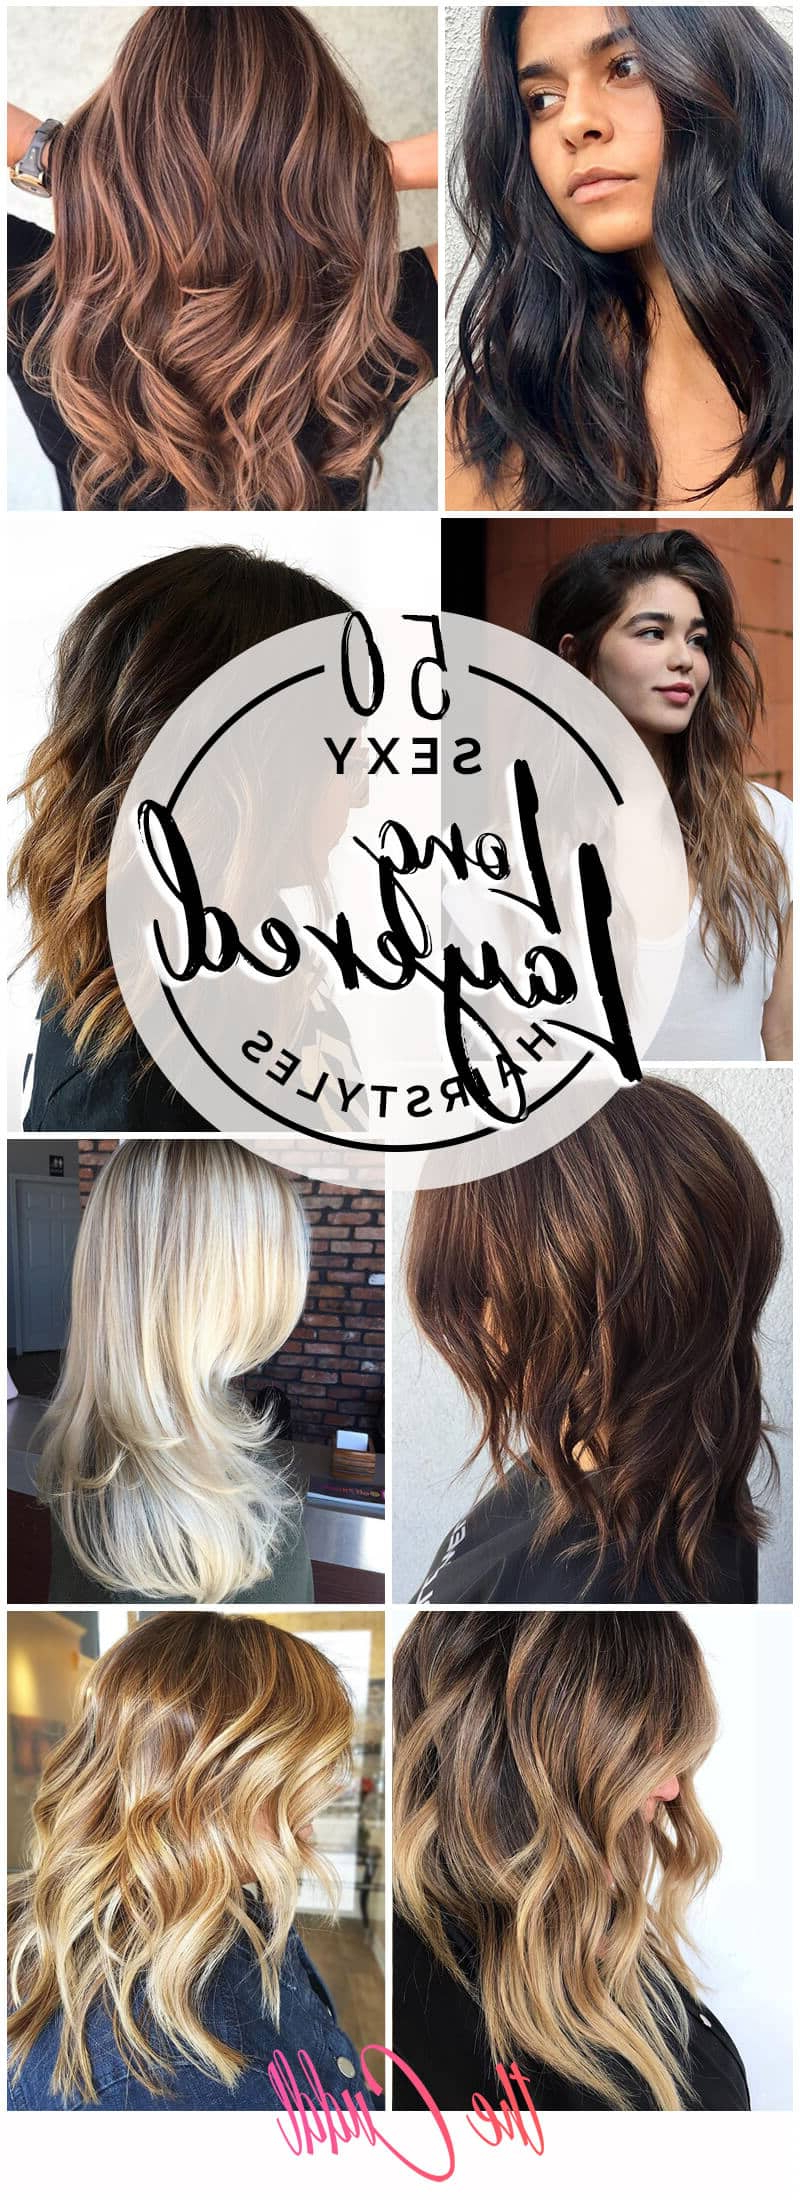 Preferred Effortlessly Layered Long Hairstyles With 50 Sexy Long Layered Hair Ideas To Create Effortless Style In 2019 (Gallery 3 of 20)